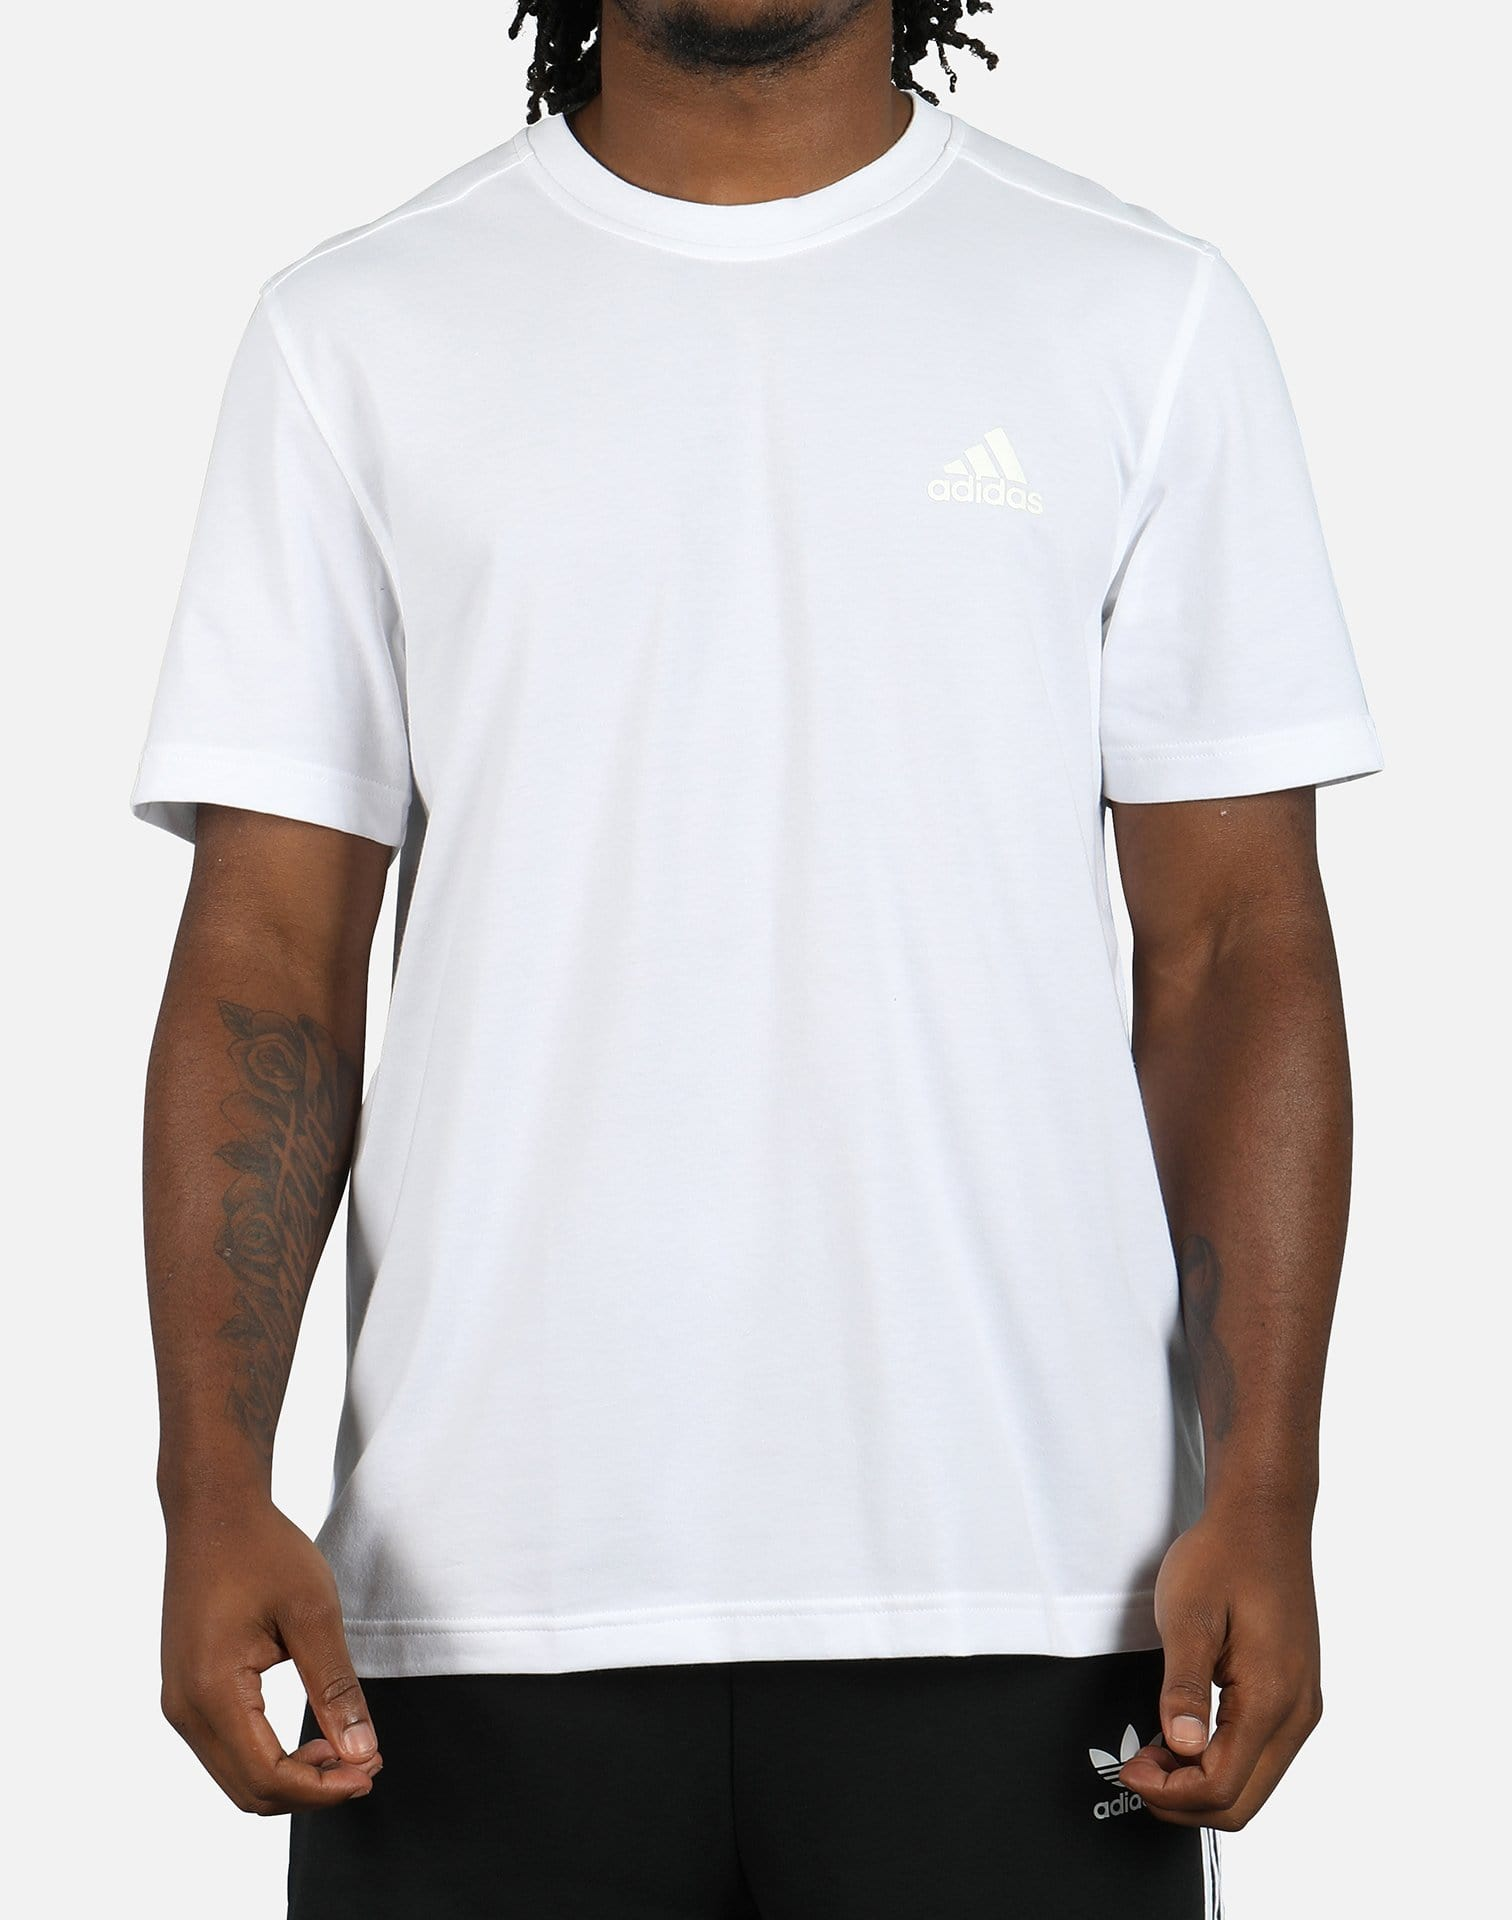 adidas Men's Essential Droptail 3-Stripes Tee